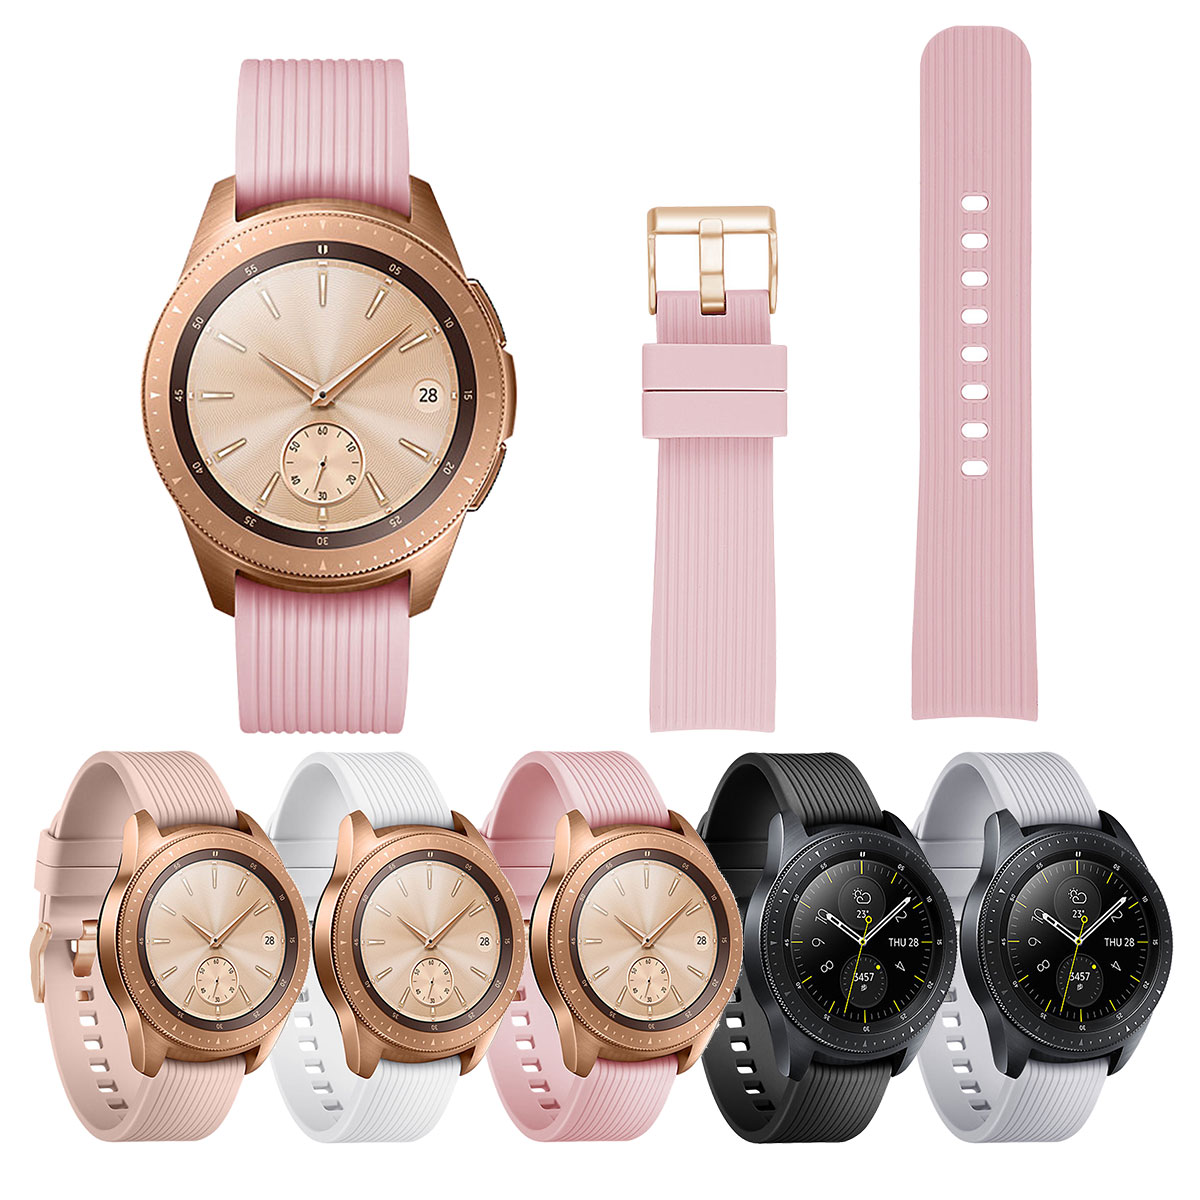 Silicone Watchband For Samsung Galaxy Watch 42mm Sport Replacement Bracelet Band Strap For Samsung Smartwatch Strap Fashion